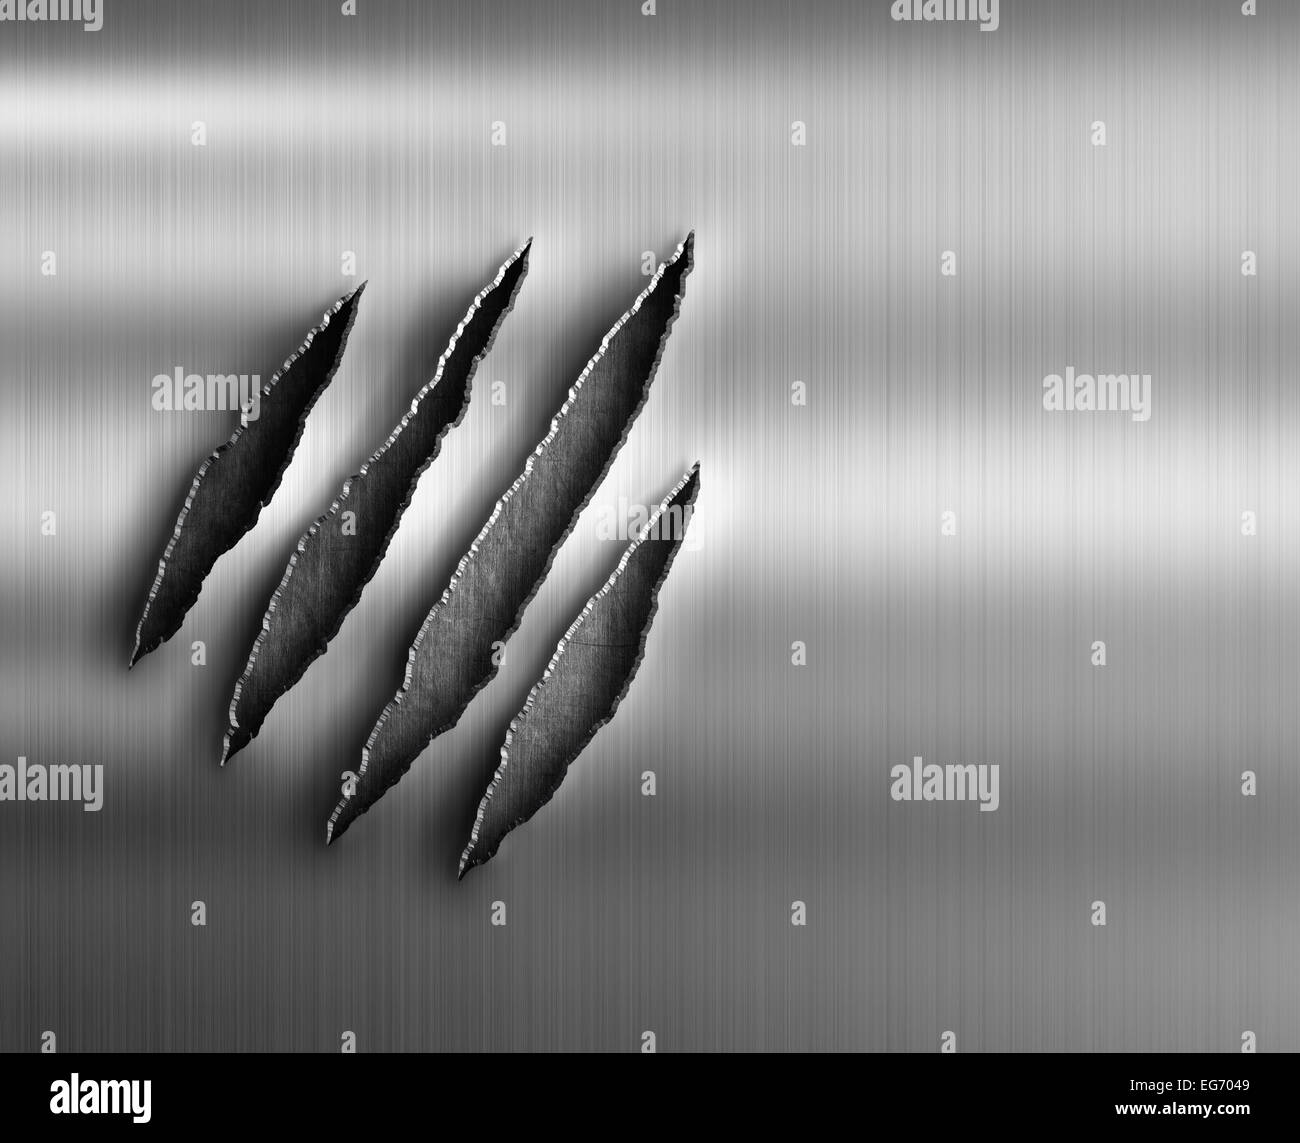 claw damage on metal background - Stock Image